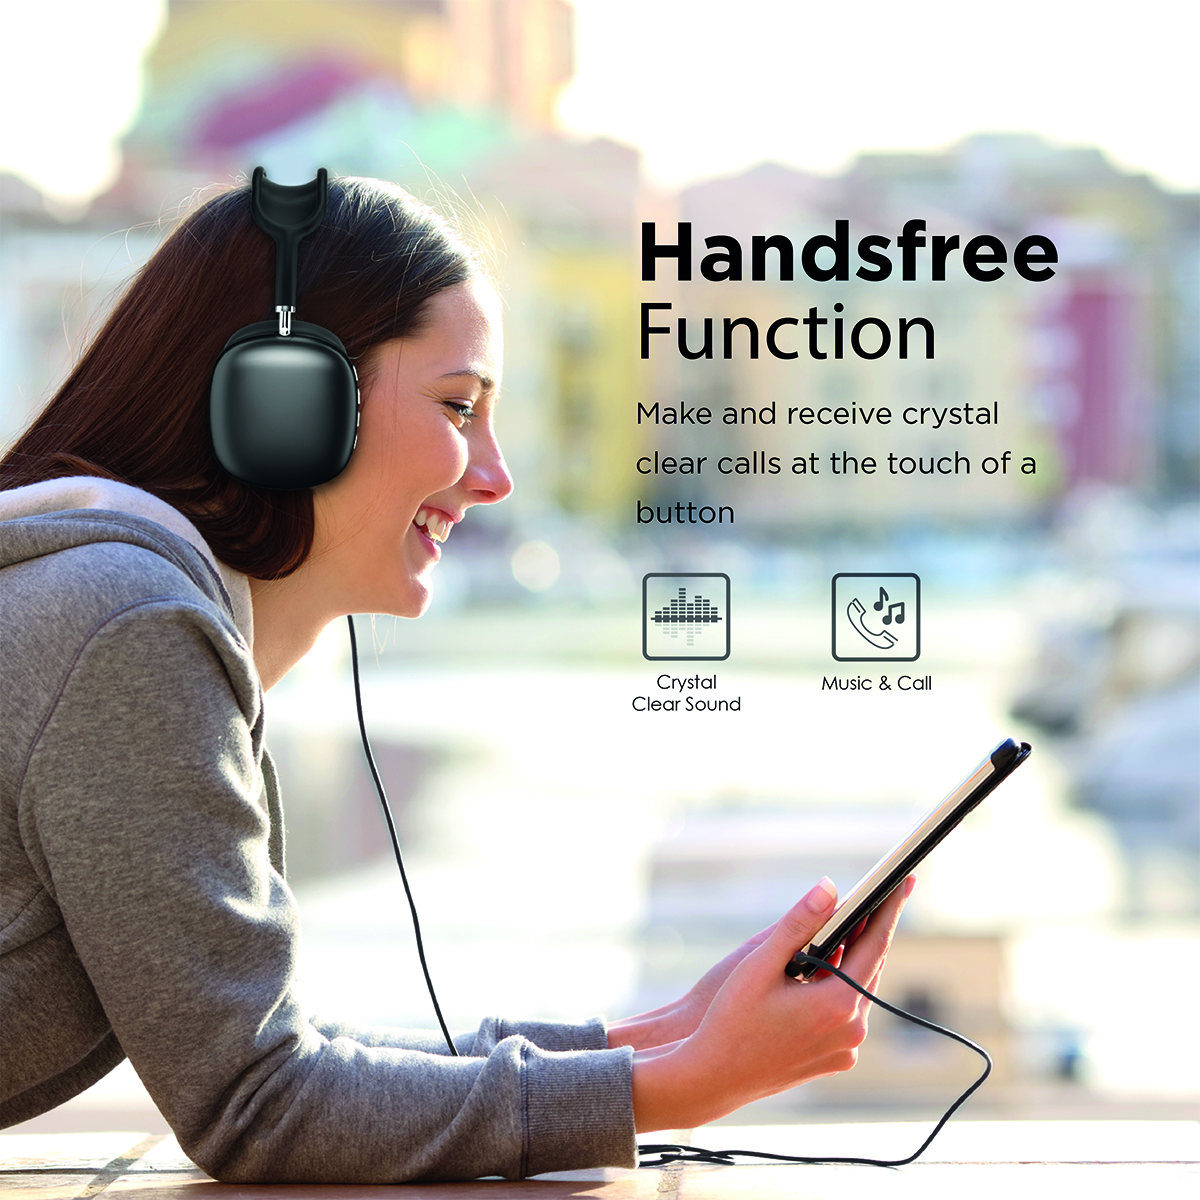 Promate Wireless Bluetooth Headphones, Ergonomic Over-Ear Adjustable Bluetooth 5.0 Headset with Mic, FM Radio, TF Card Slot and Wired Mode 3.5mm Jack for iPhone 12, Gym, Travel, Office, AirBeat Black